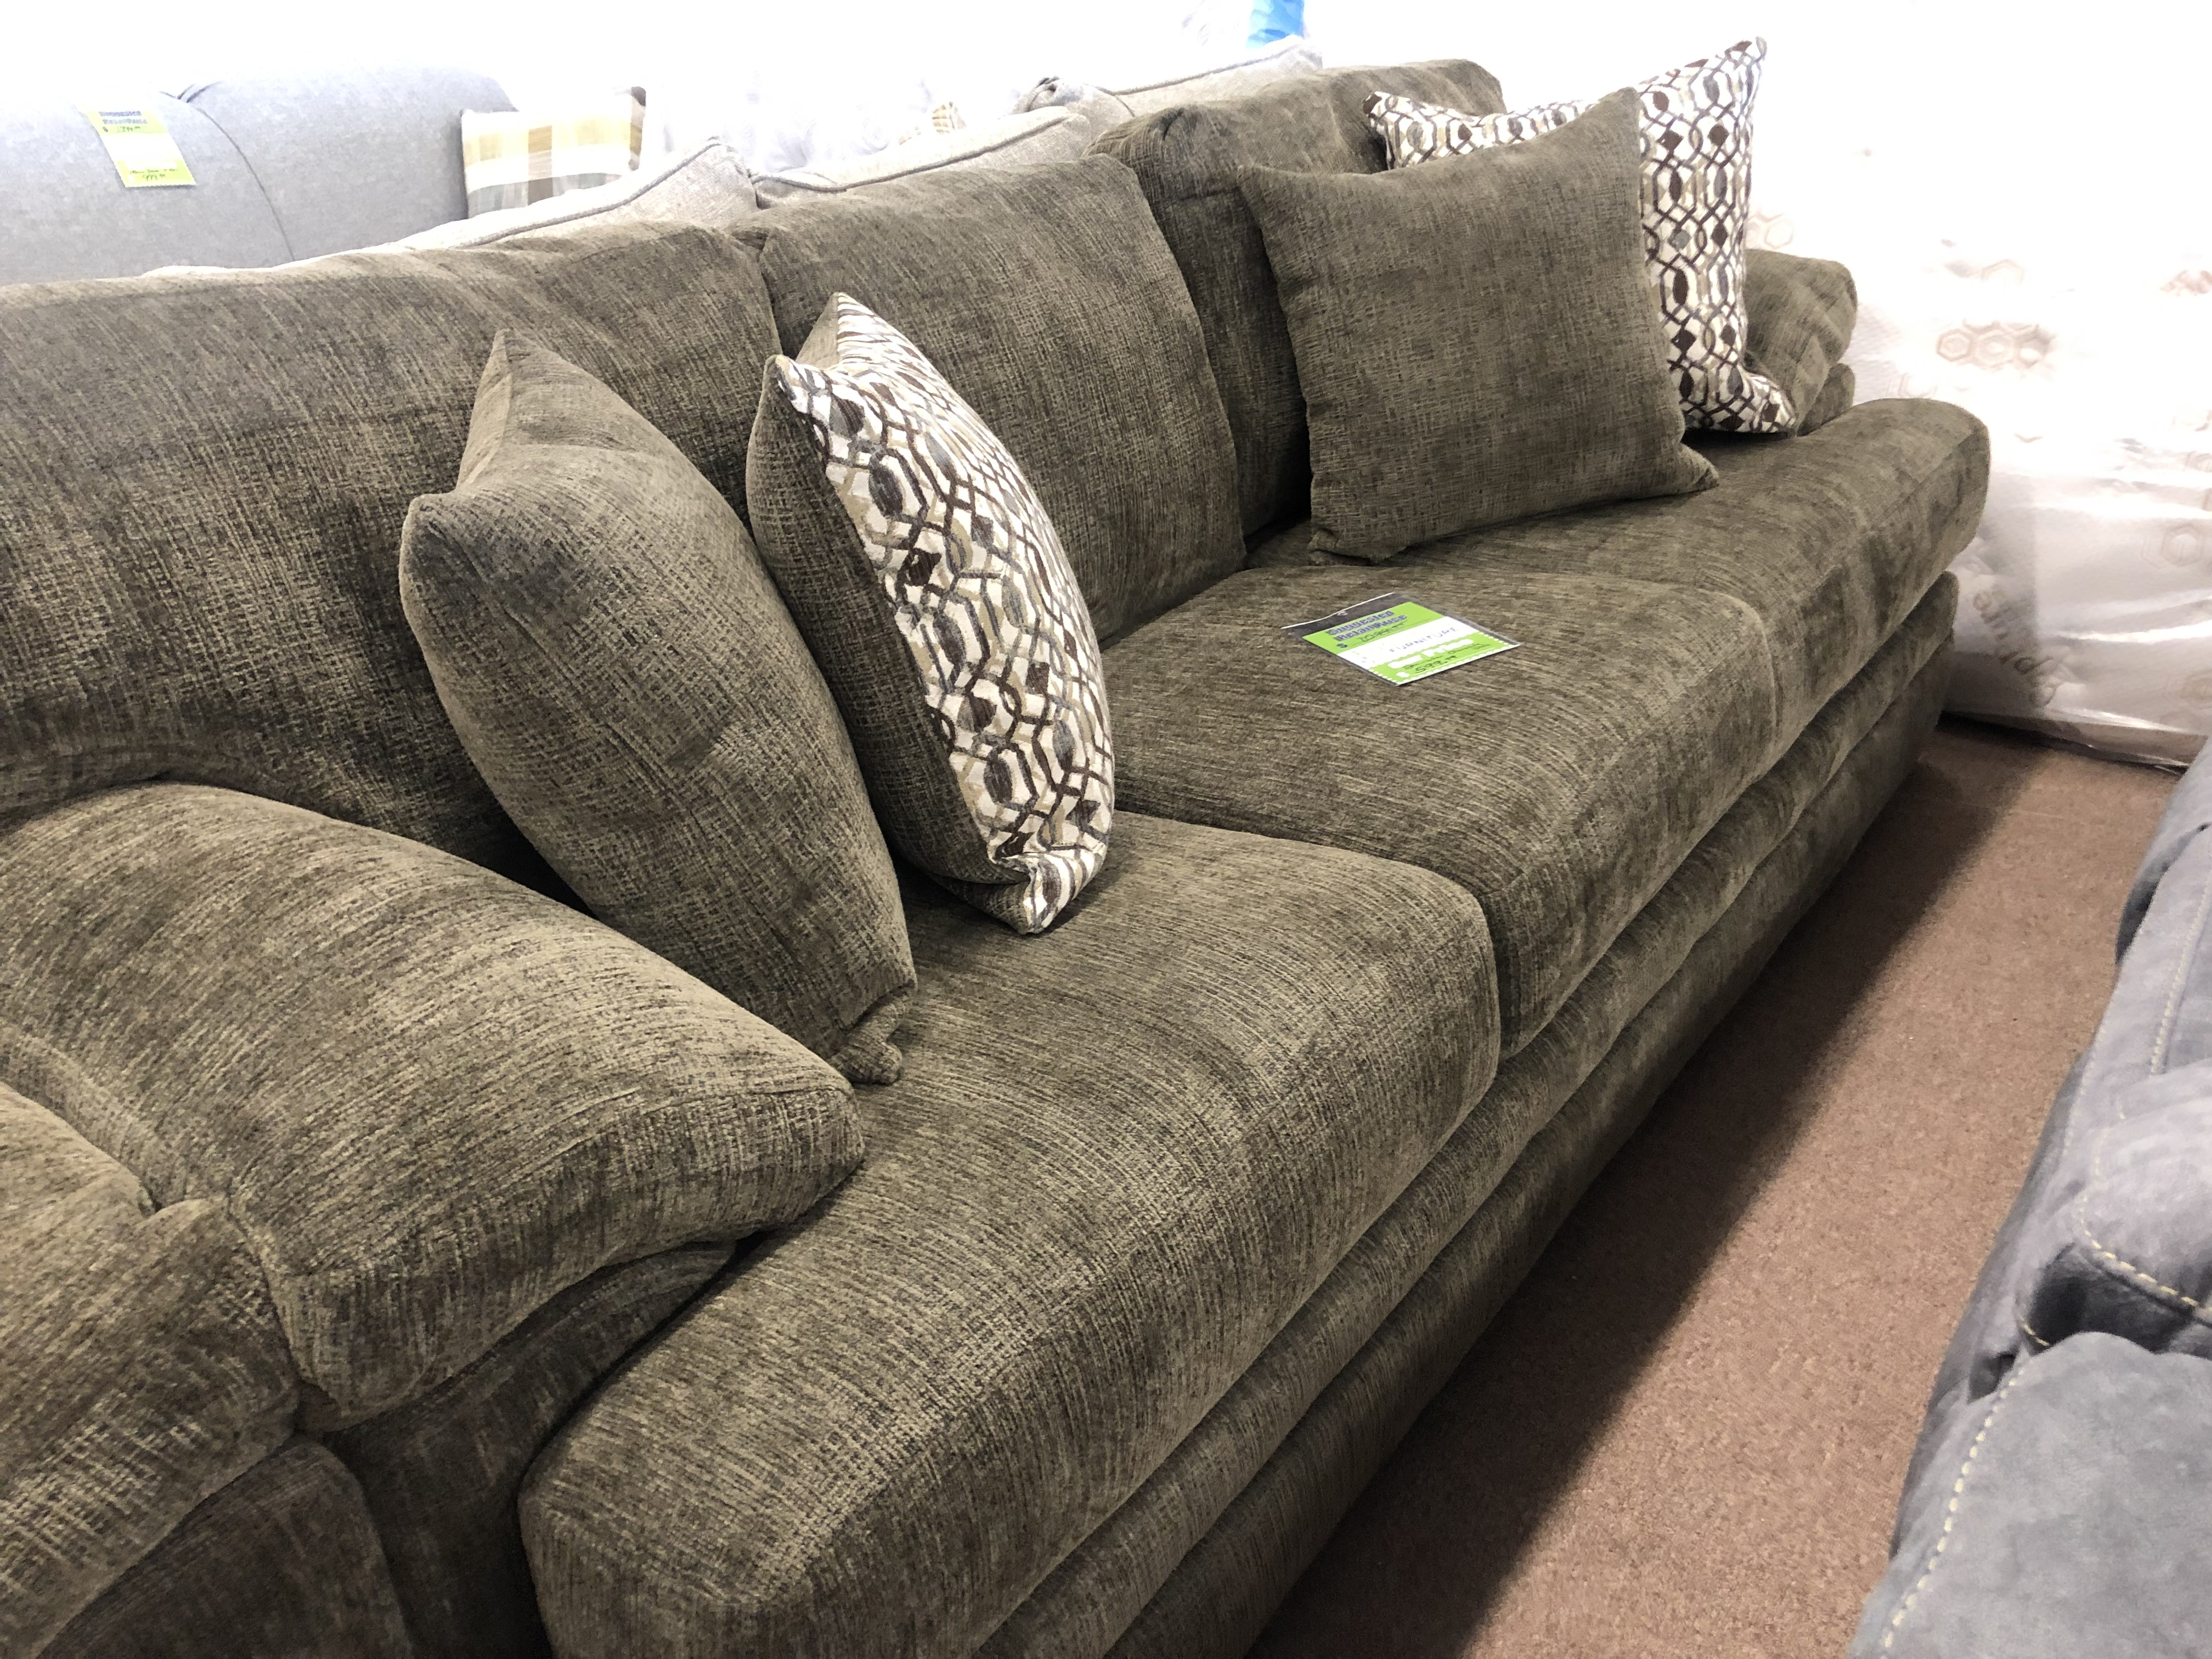 Beaverton Choc. Sofa/Loveseat